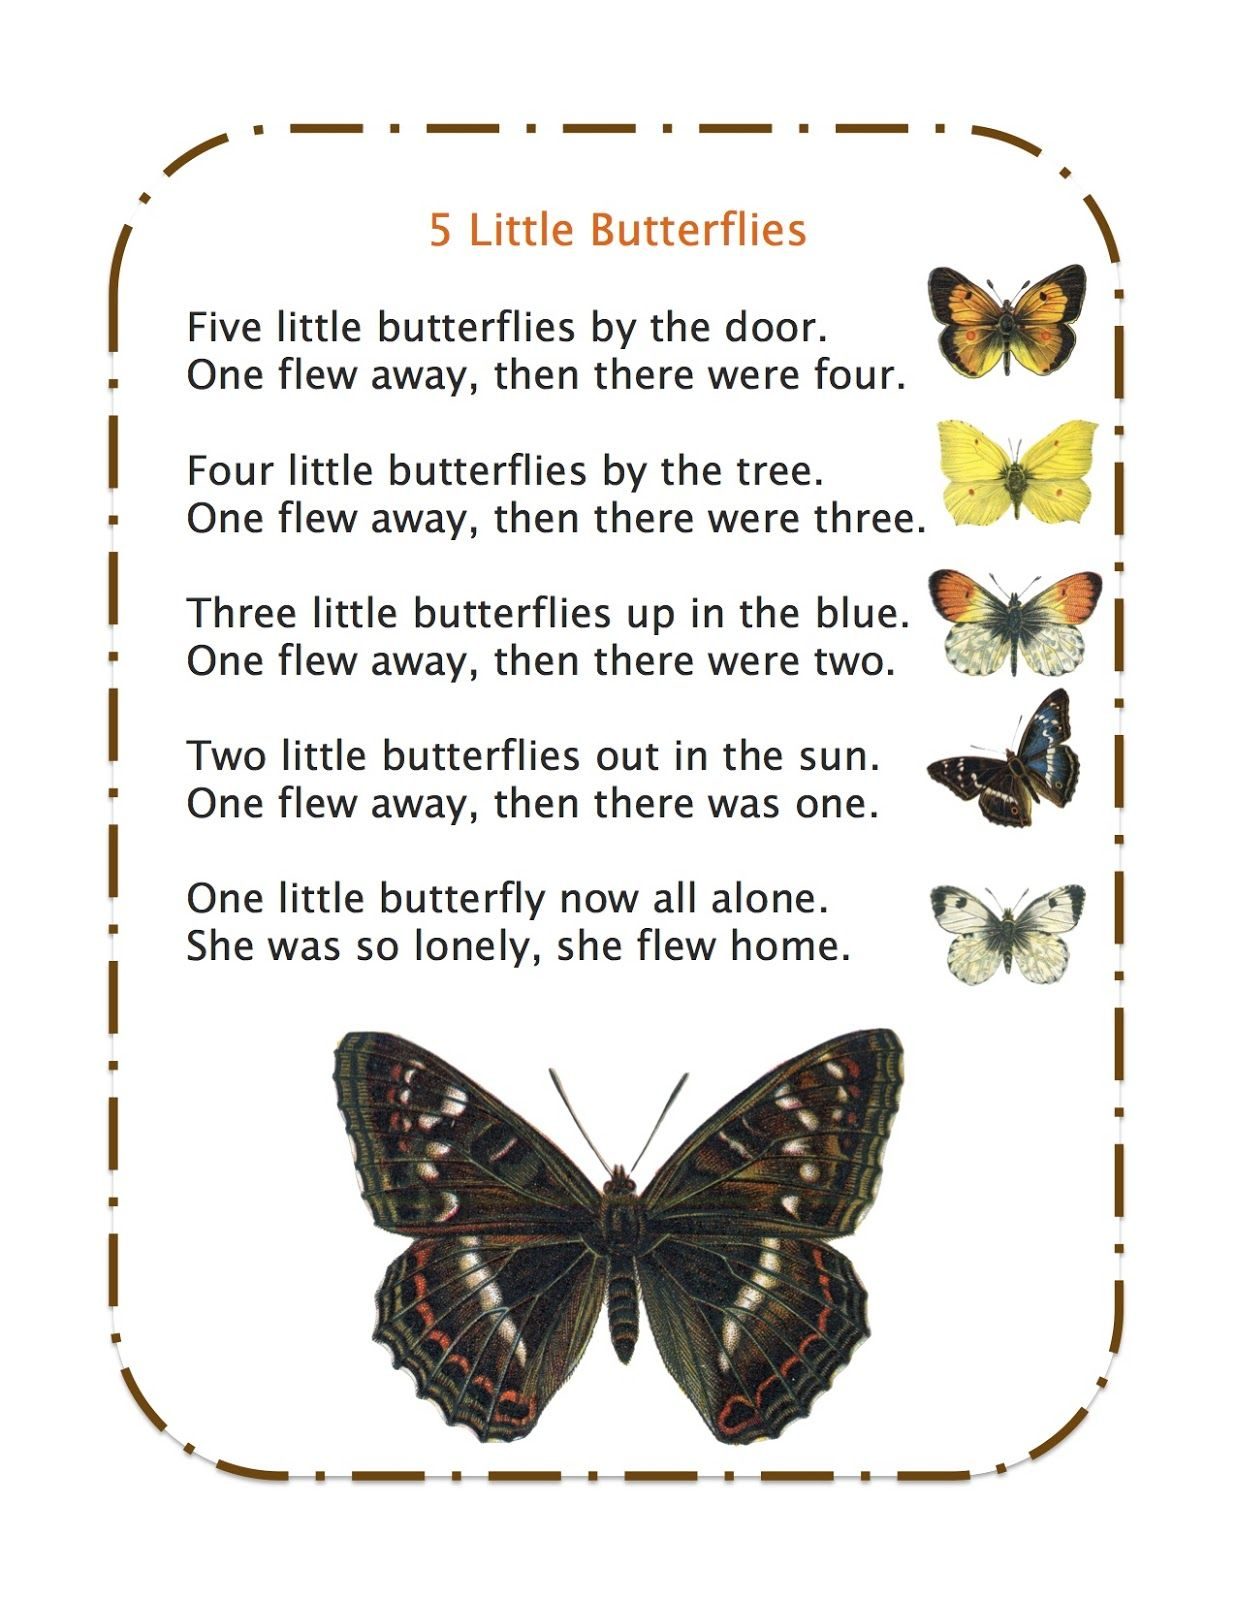 5 Little Butterflies Song Create Butterfly Manipulatives To Use While Singing